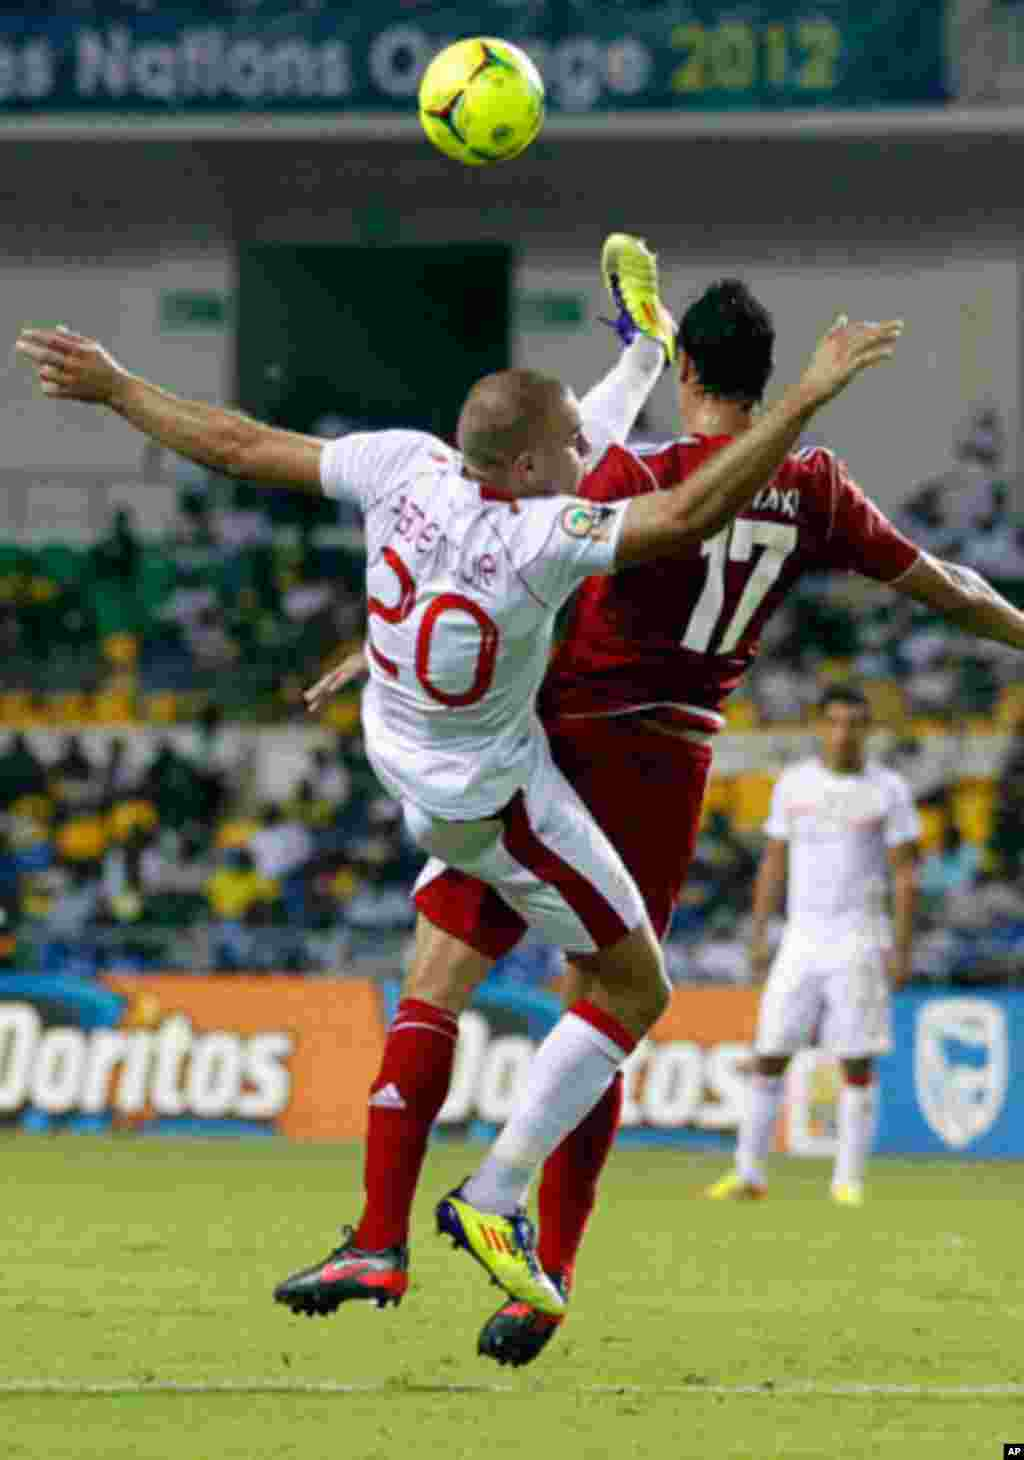 Tunisia's Aymen jumps for the ball with Morocco's Marouane during their African Cup of Nations soccer match in Libreville